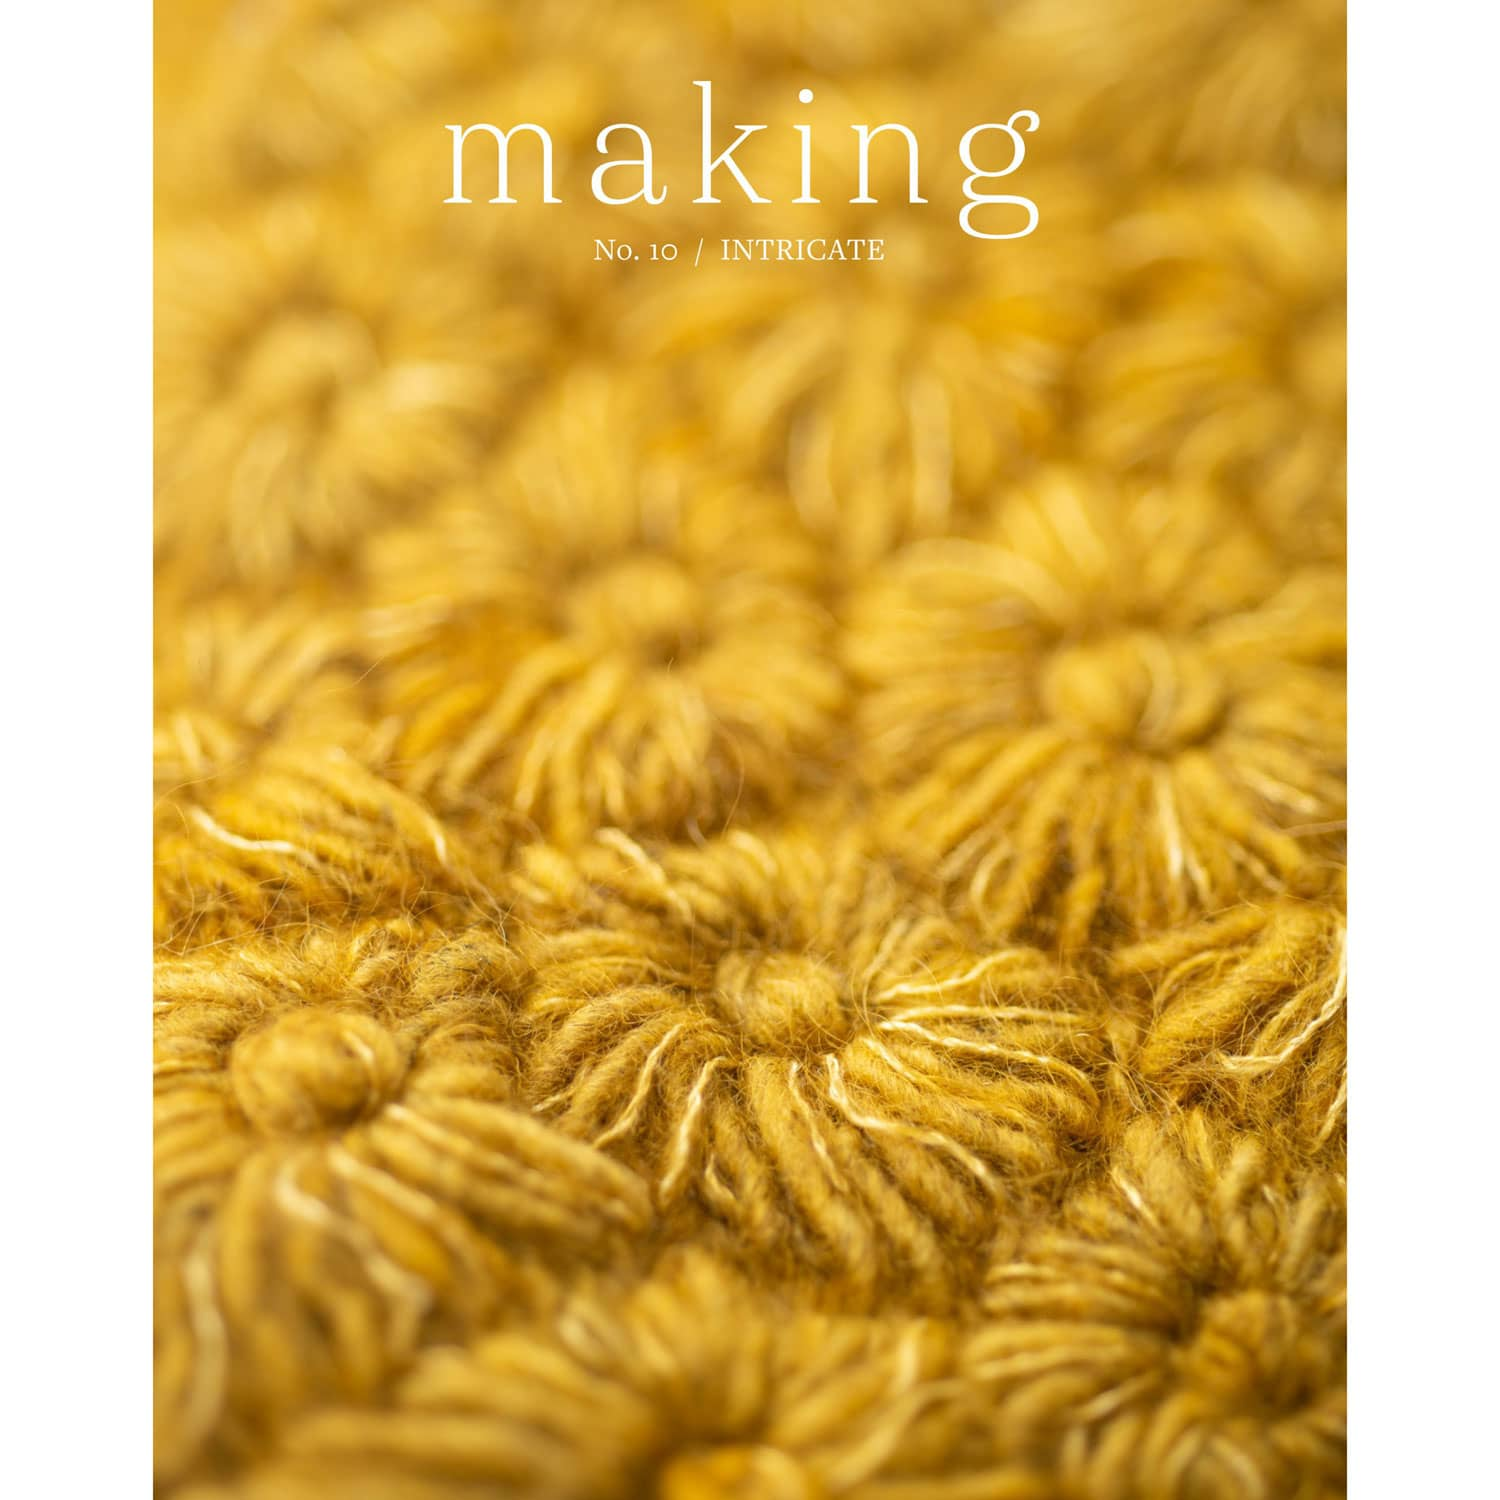 Making Magazine - No 10 - INTRICATE